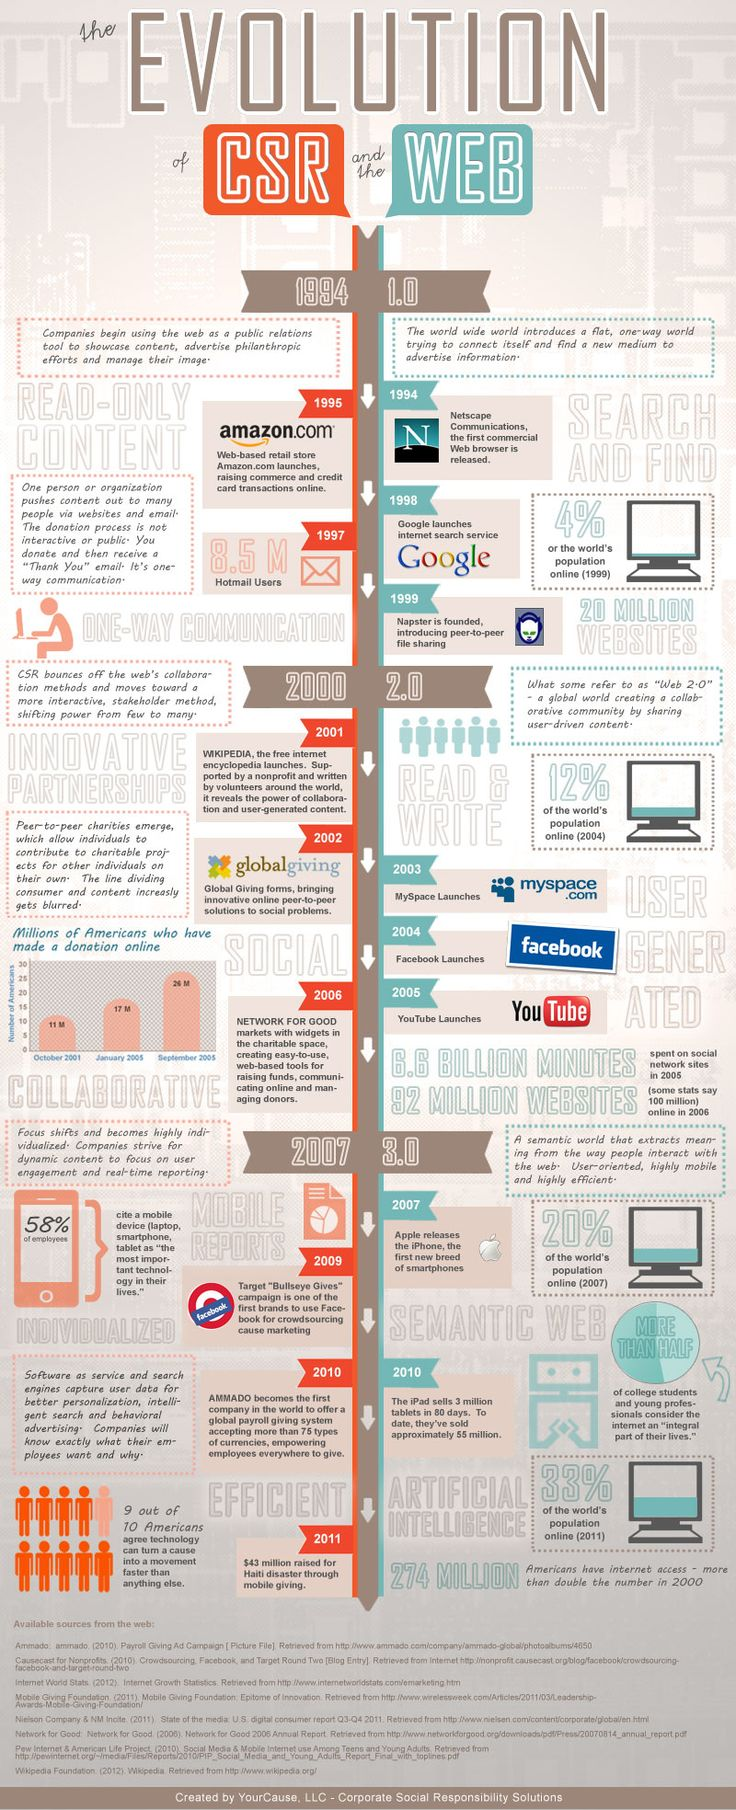 A cool infographic about the evolution of two important things -- corporate social responsibility AND the Internet.  // Taken from YourCause.com.